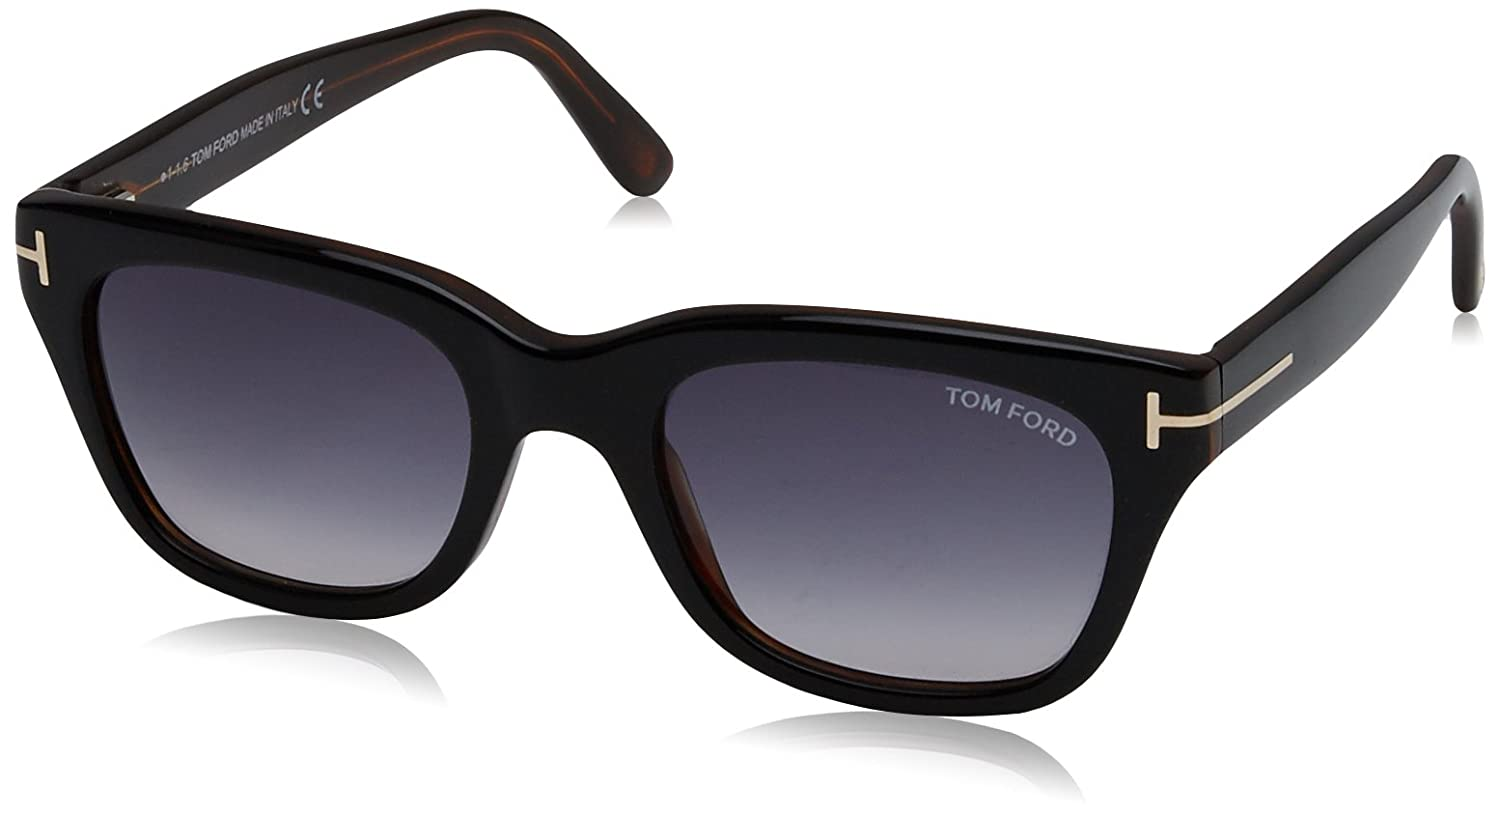 TALLA 52. Tom Ford Sonnenbrille Snowdon (FT0237)